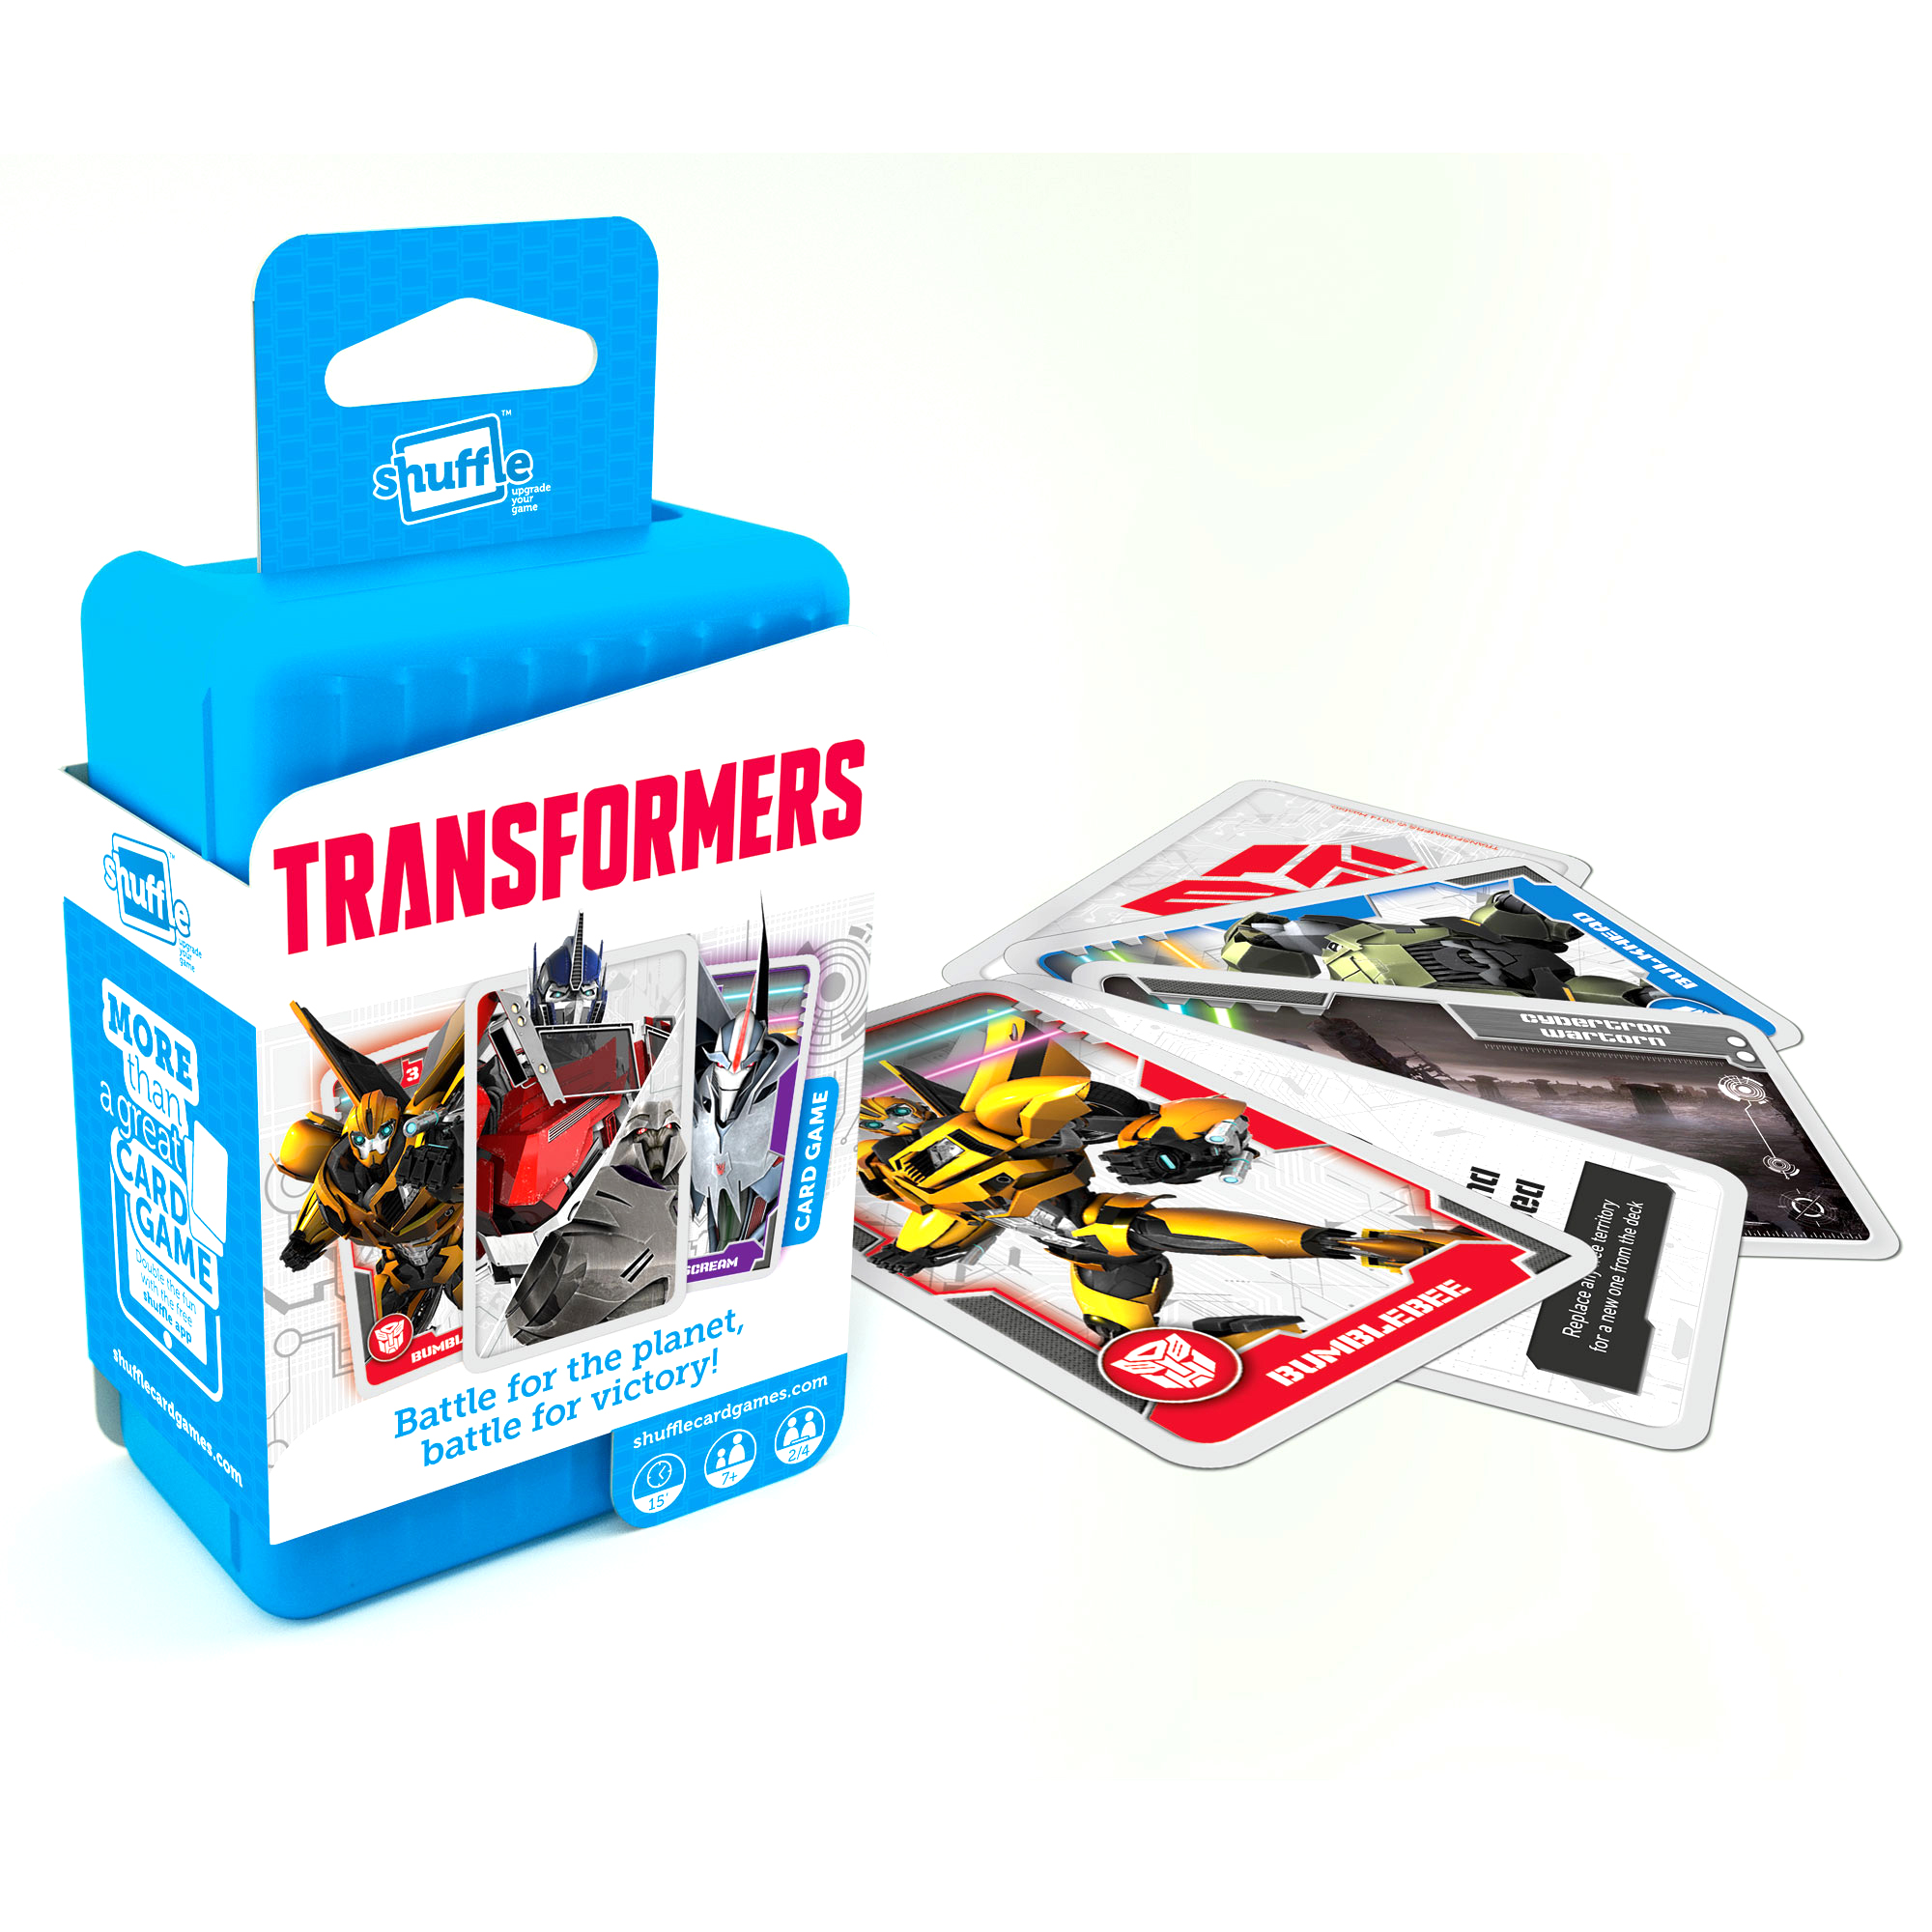 Image of Shuffle Transformers